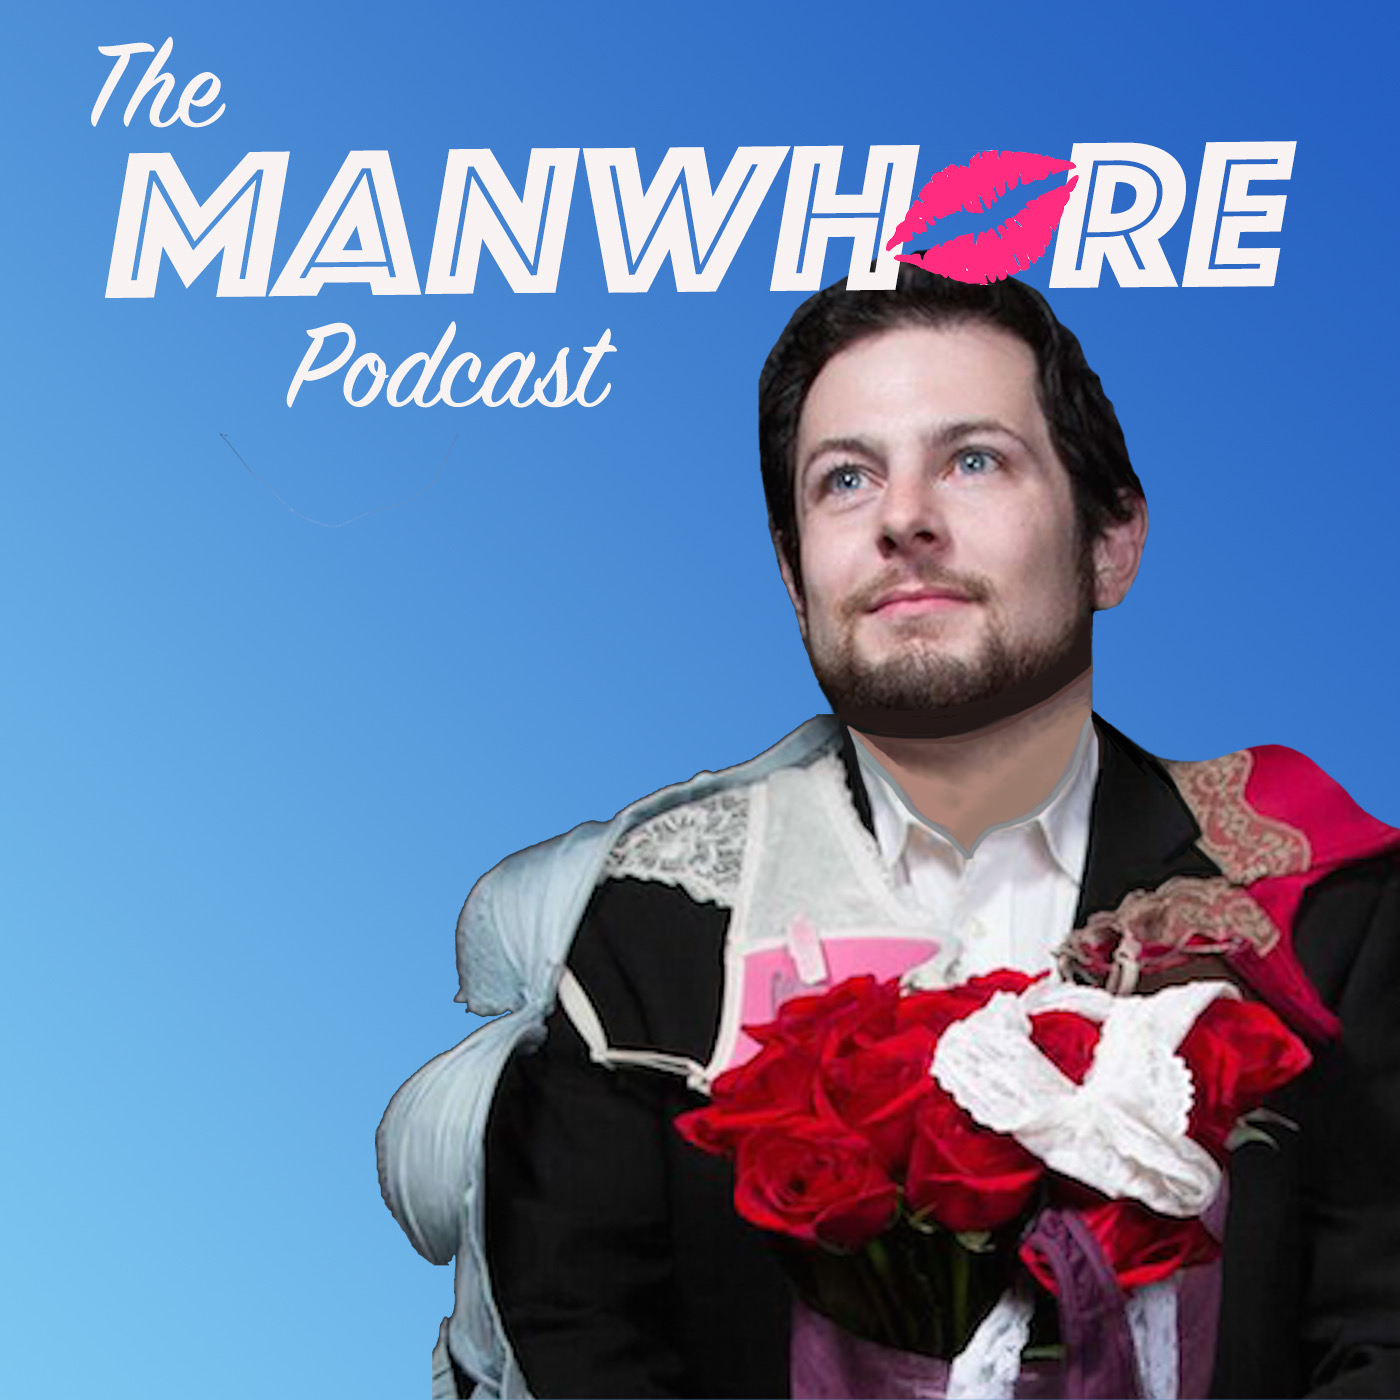 The Manwhore Podcast: A Sex-Positive Quest - Ep. 296: Healing Sexual Trauma Through Sonic Sex with Megwyn White